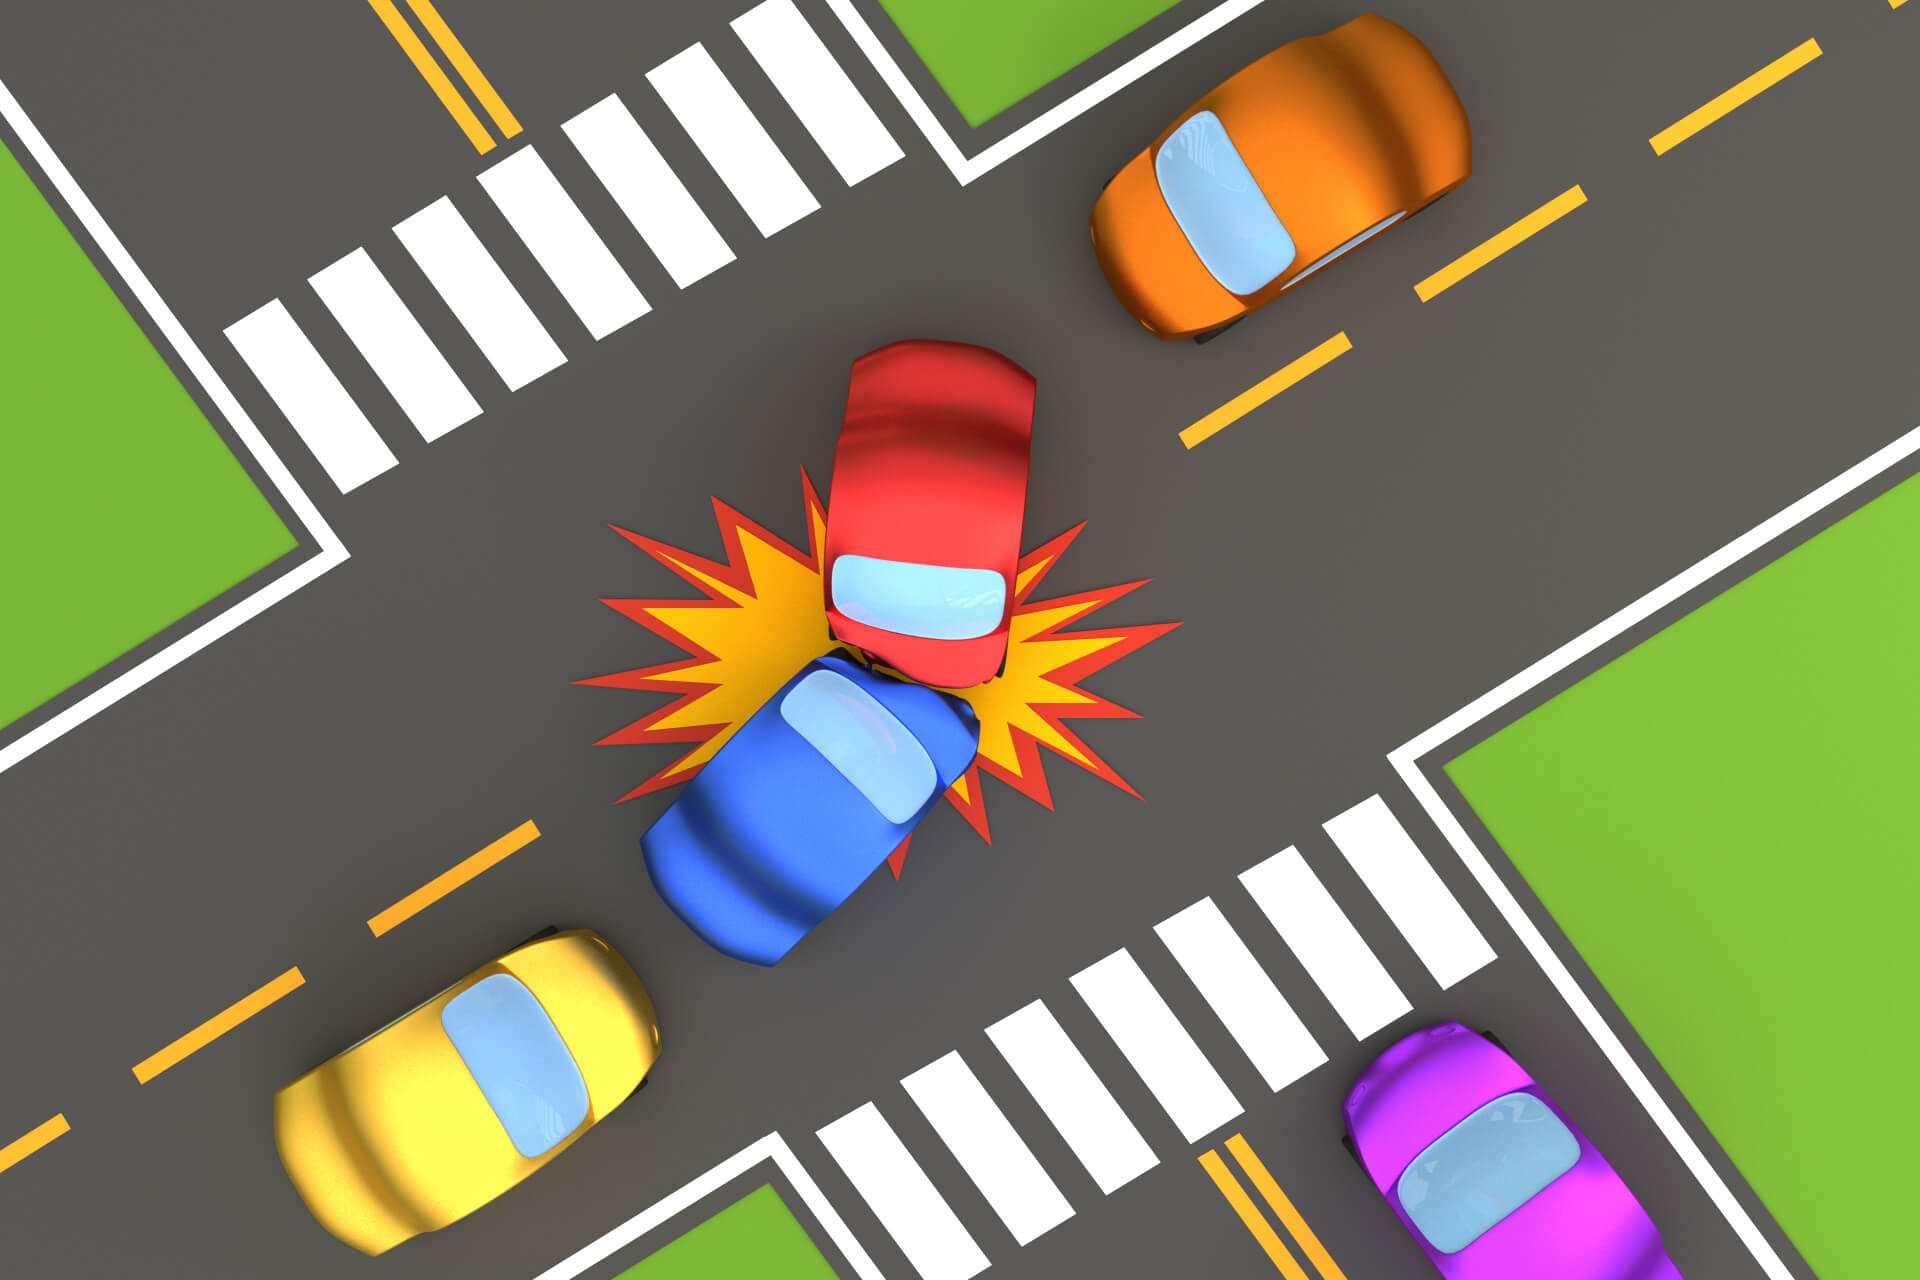 Overhead View Of Intersection Collision Free Image Download